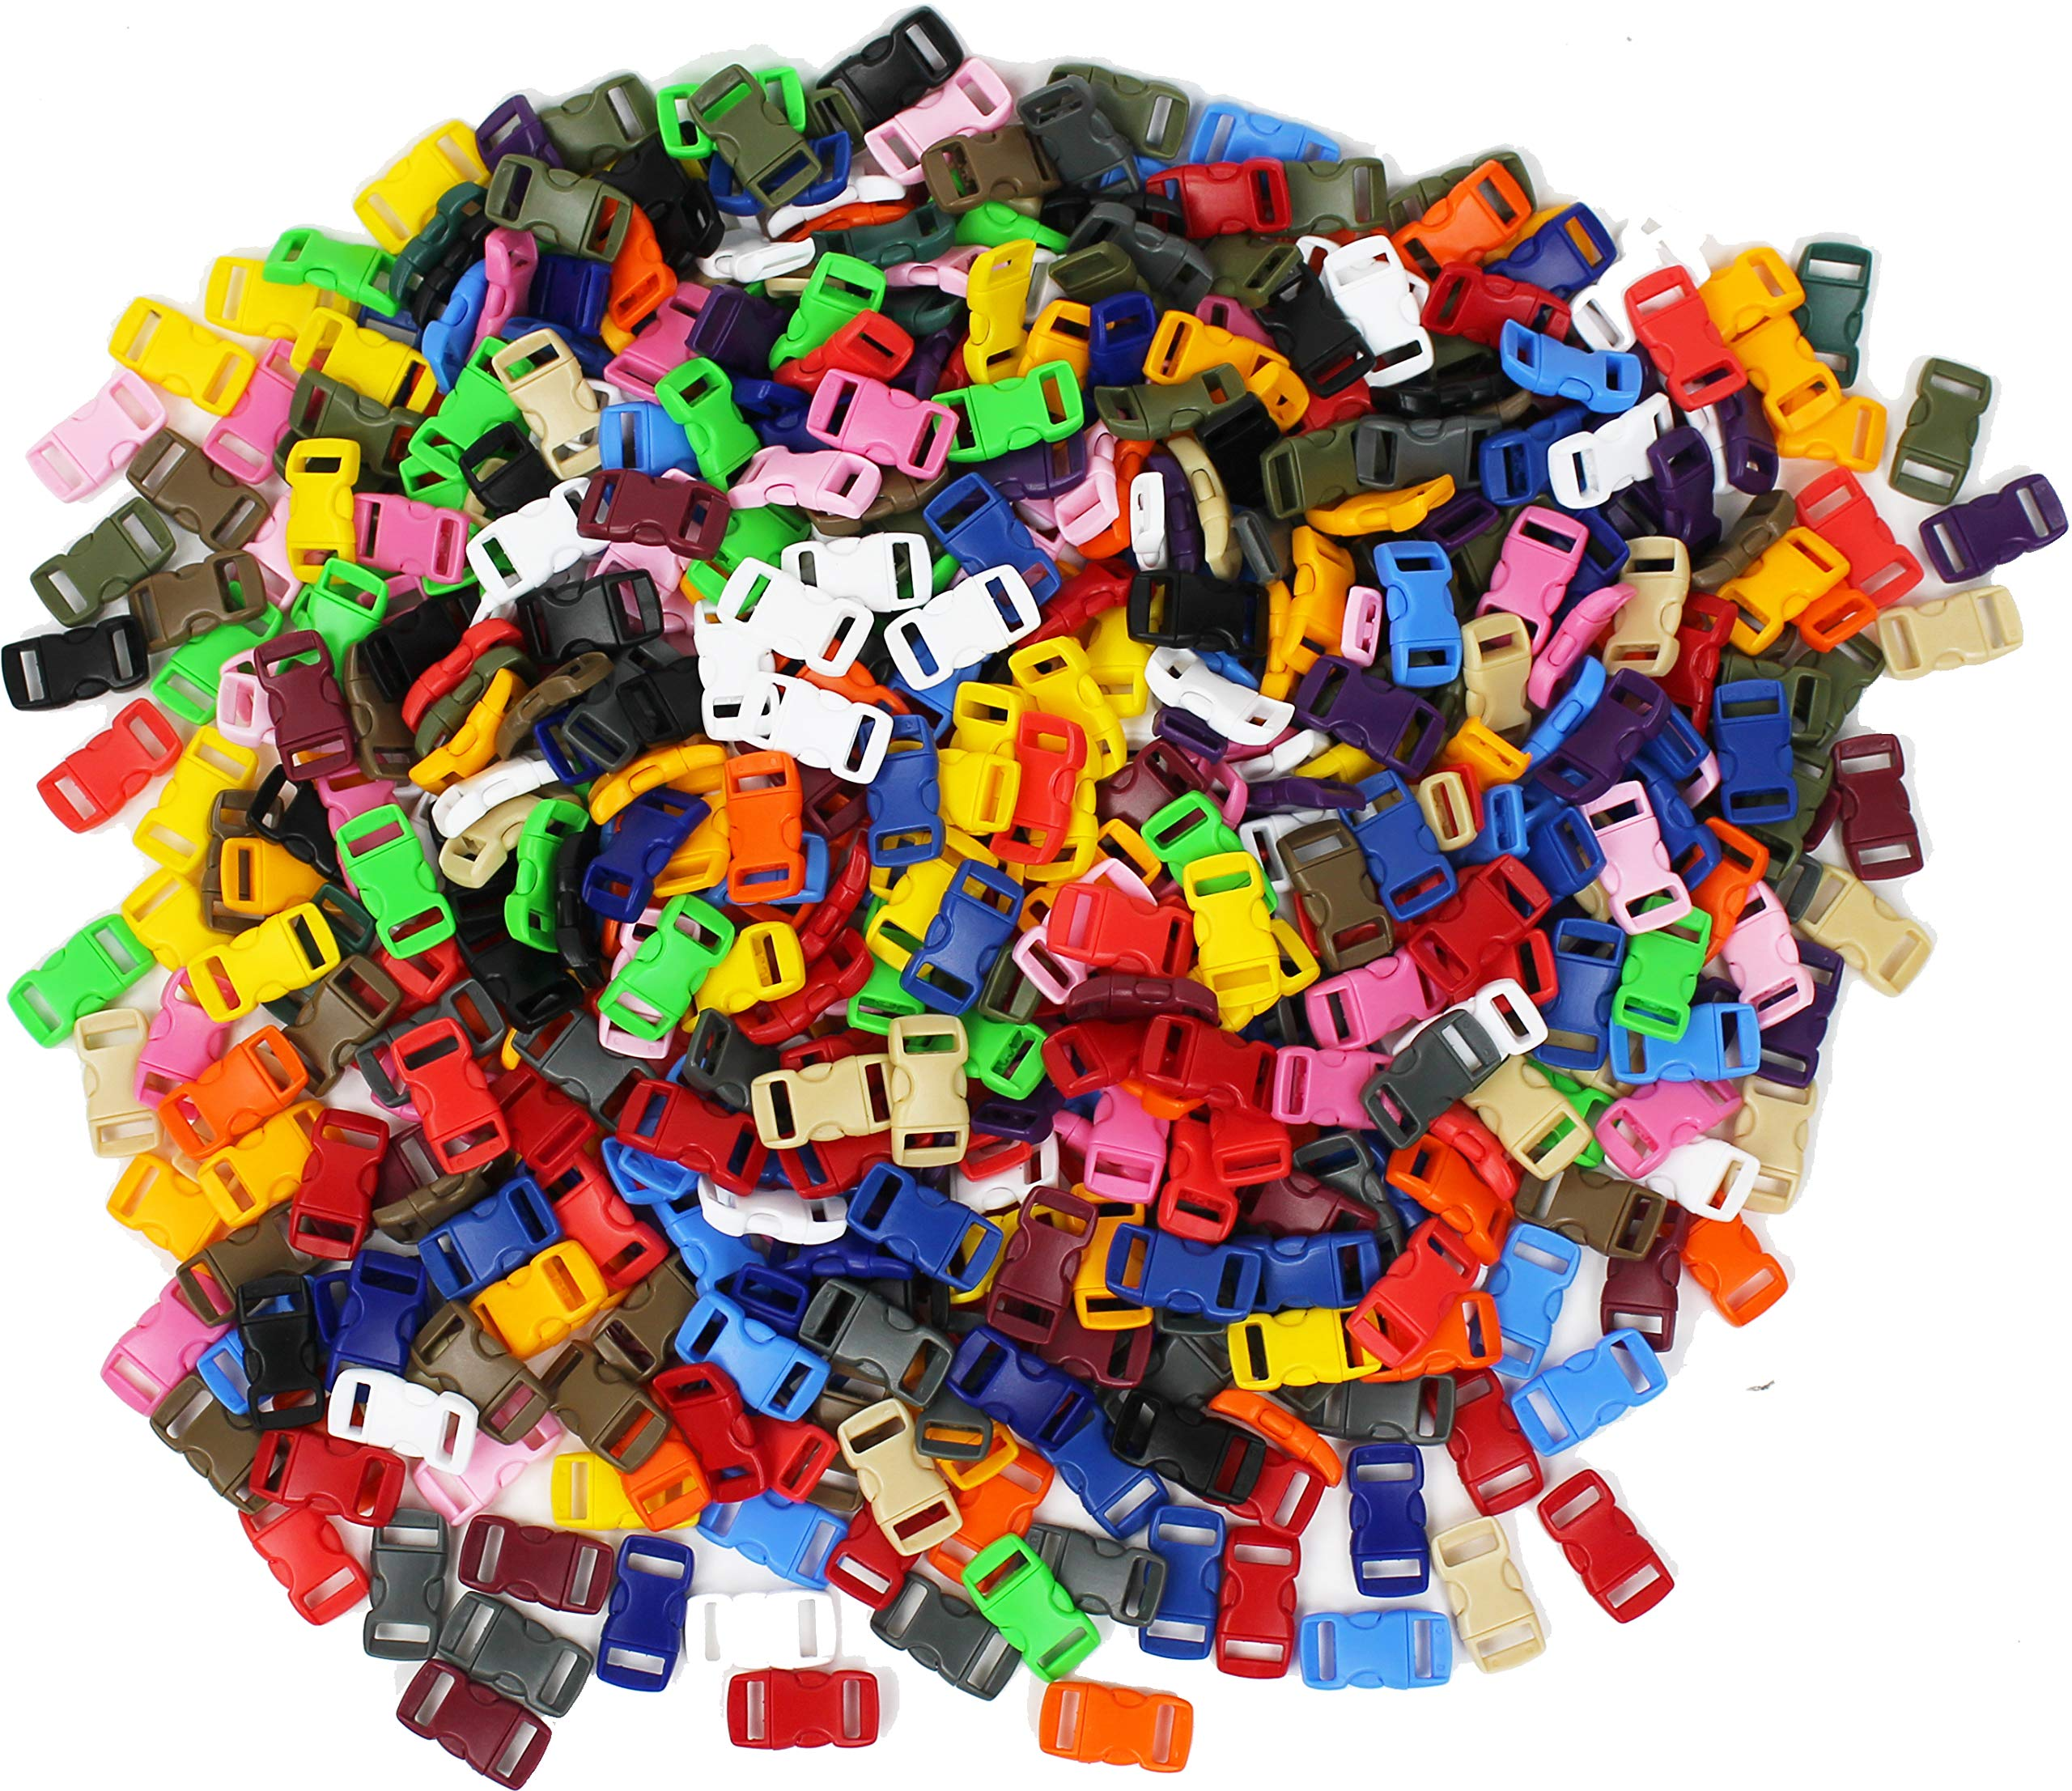 3/8'' Contoured Side Release Buckles Wholesale Lot Curved Plastic Small Buckles 3/8'' Assorted Solid Colors (10,000) by Army Universe